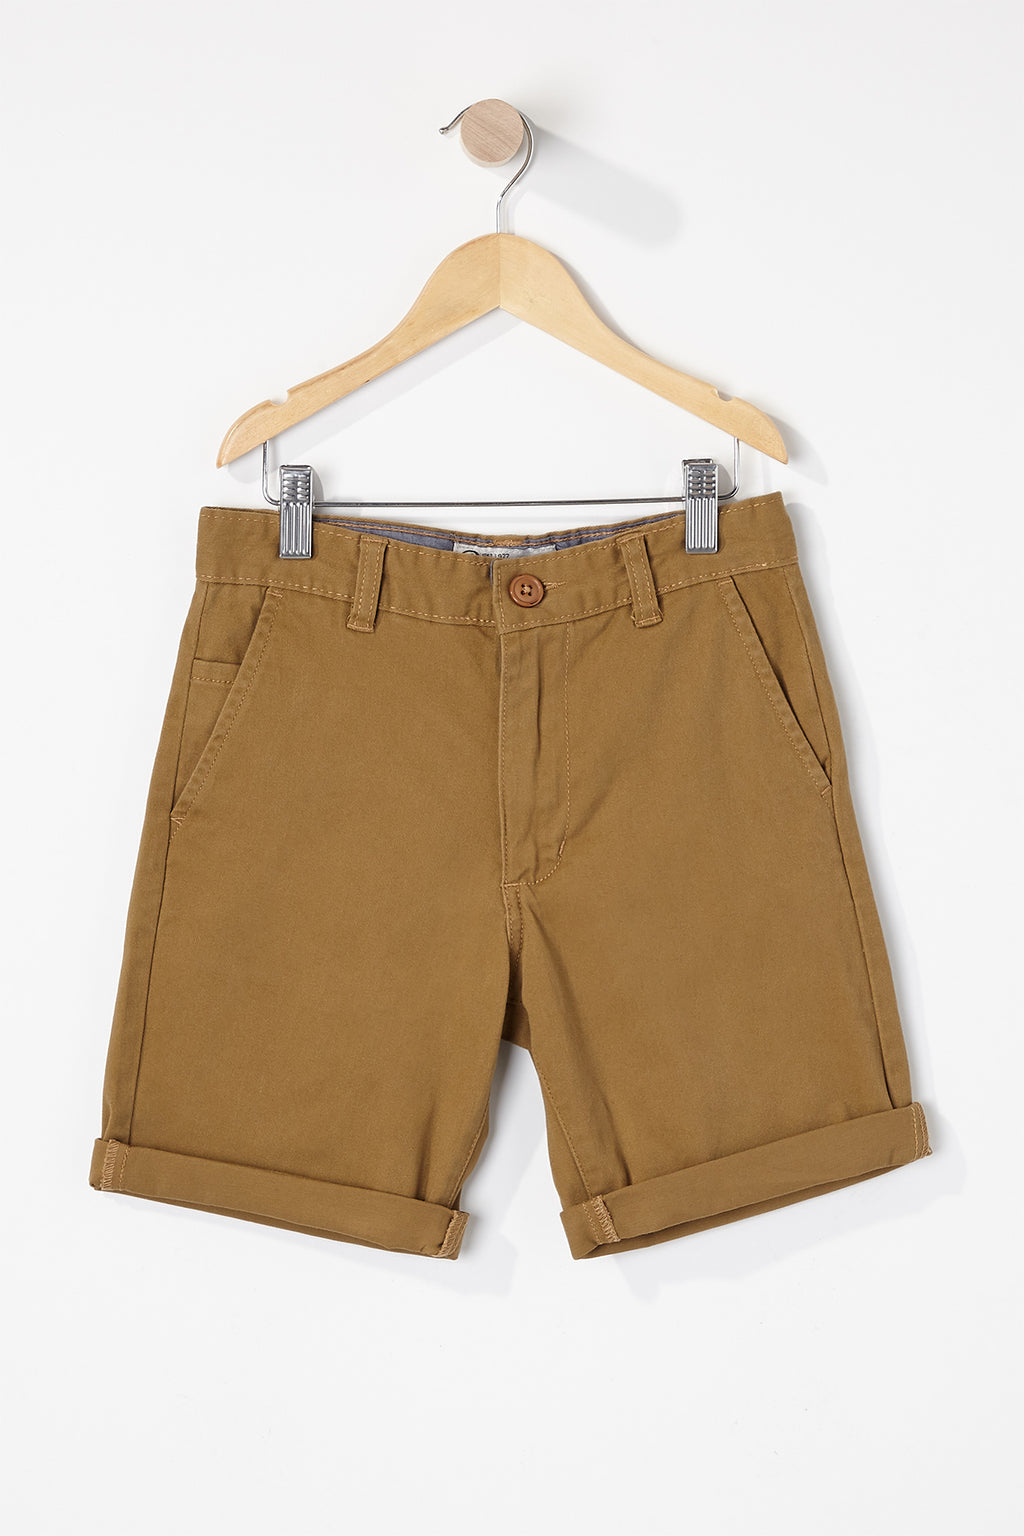 West49 Boys Chino Shorts